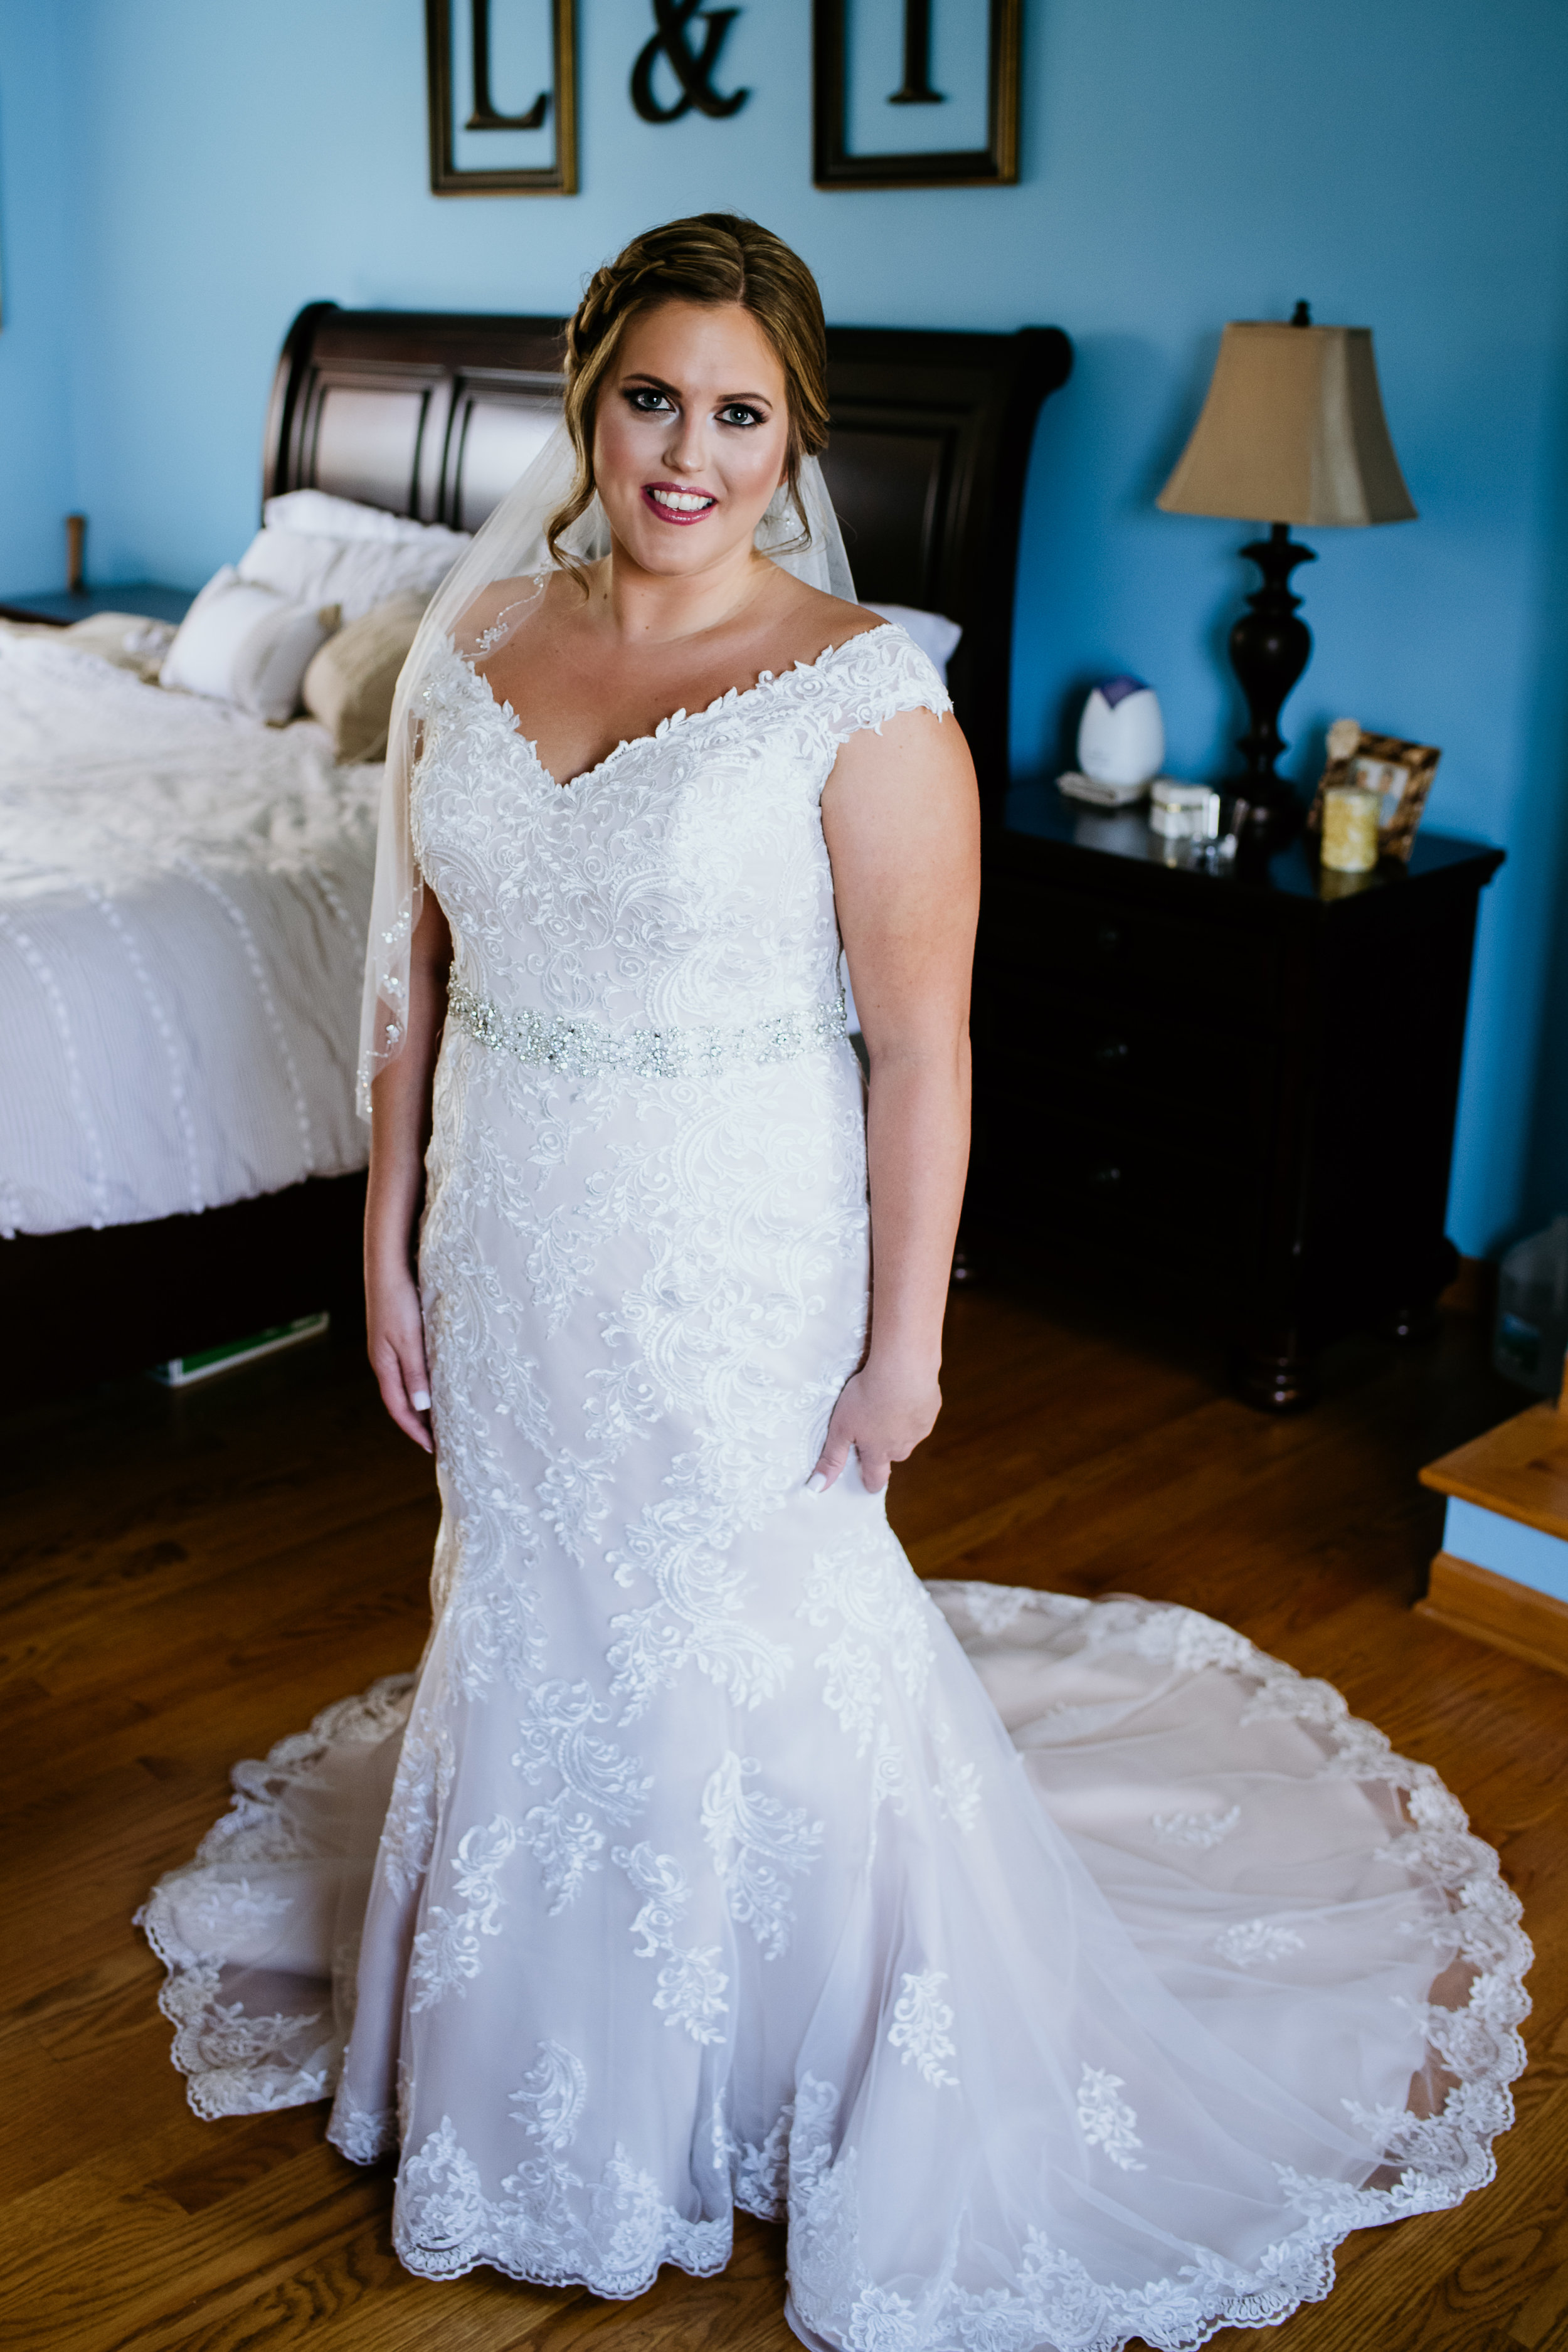 a4b3f2bb3288 Laura looked absolutely gorgeous in her gown, look at all of that beautiful  lace detail!